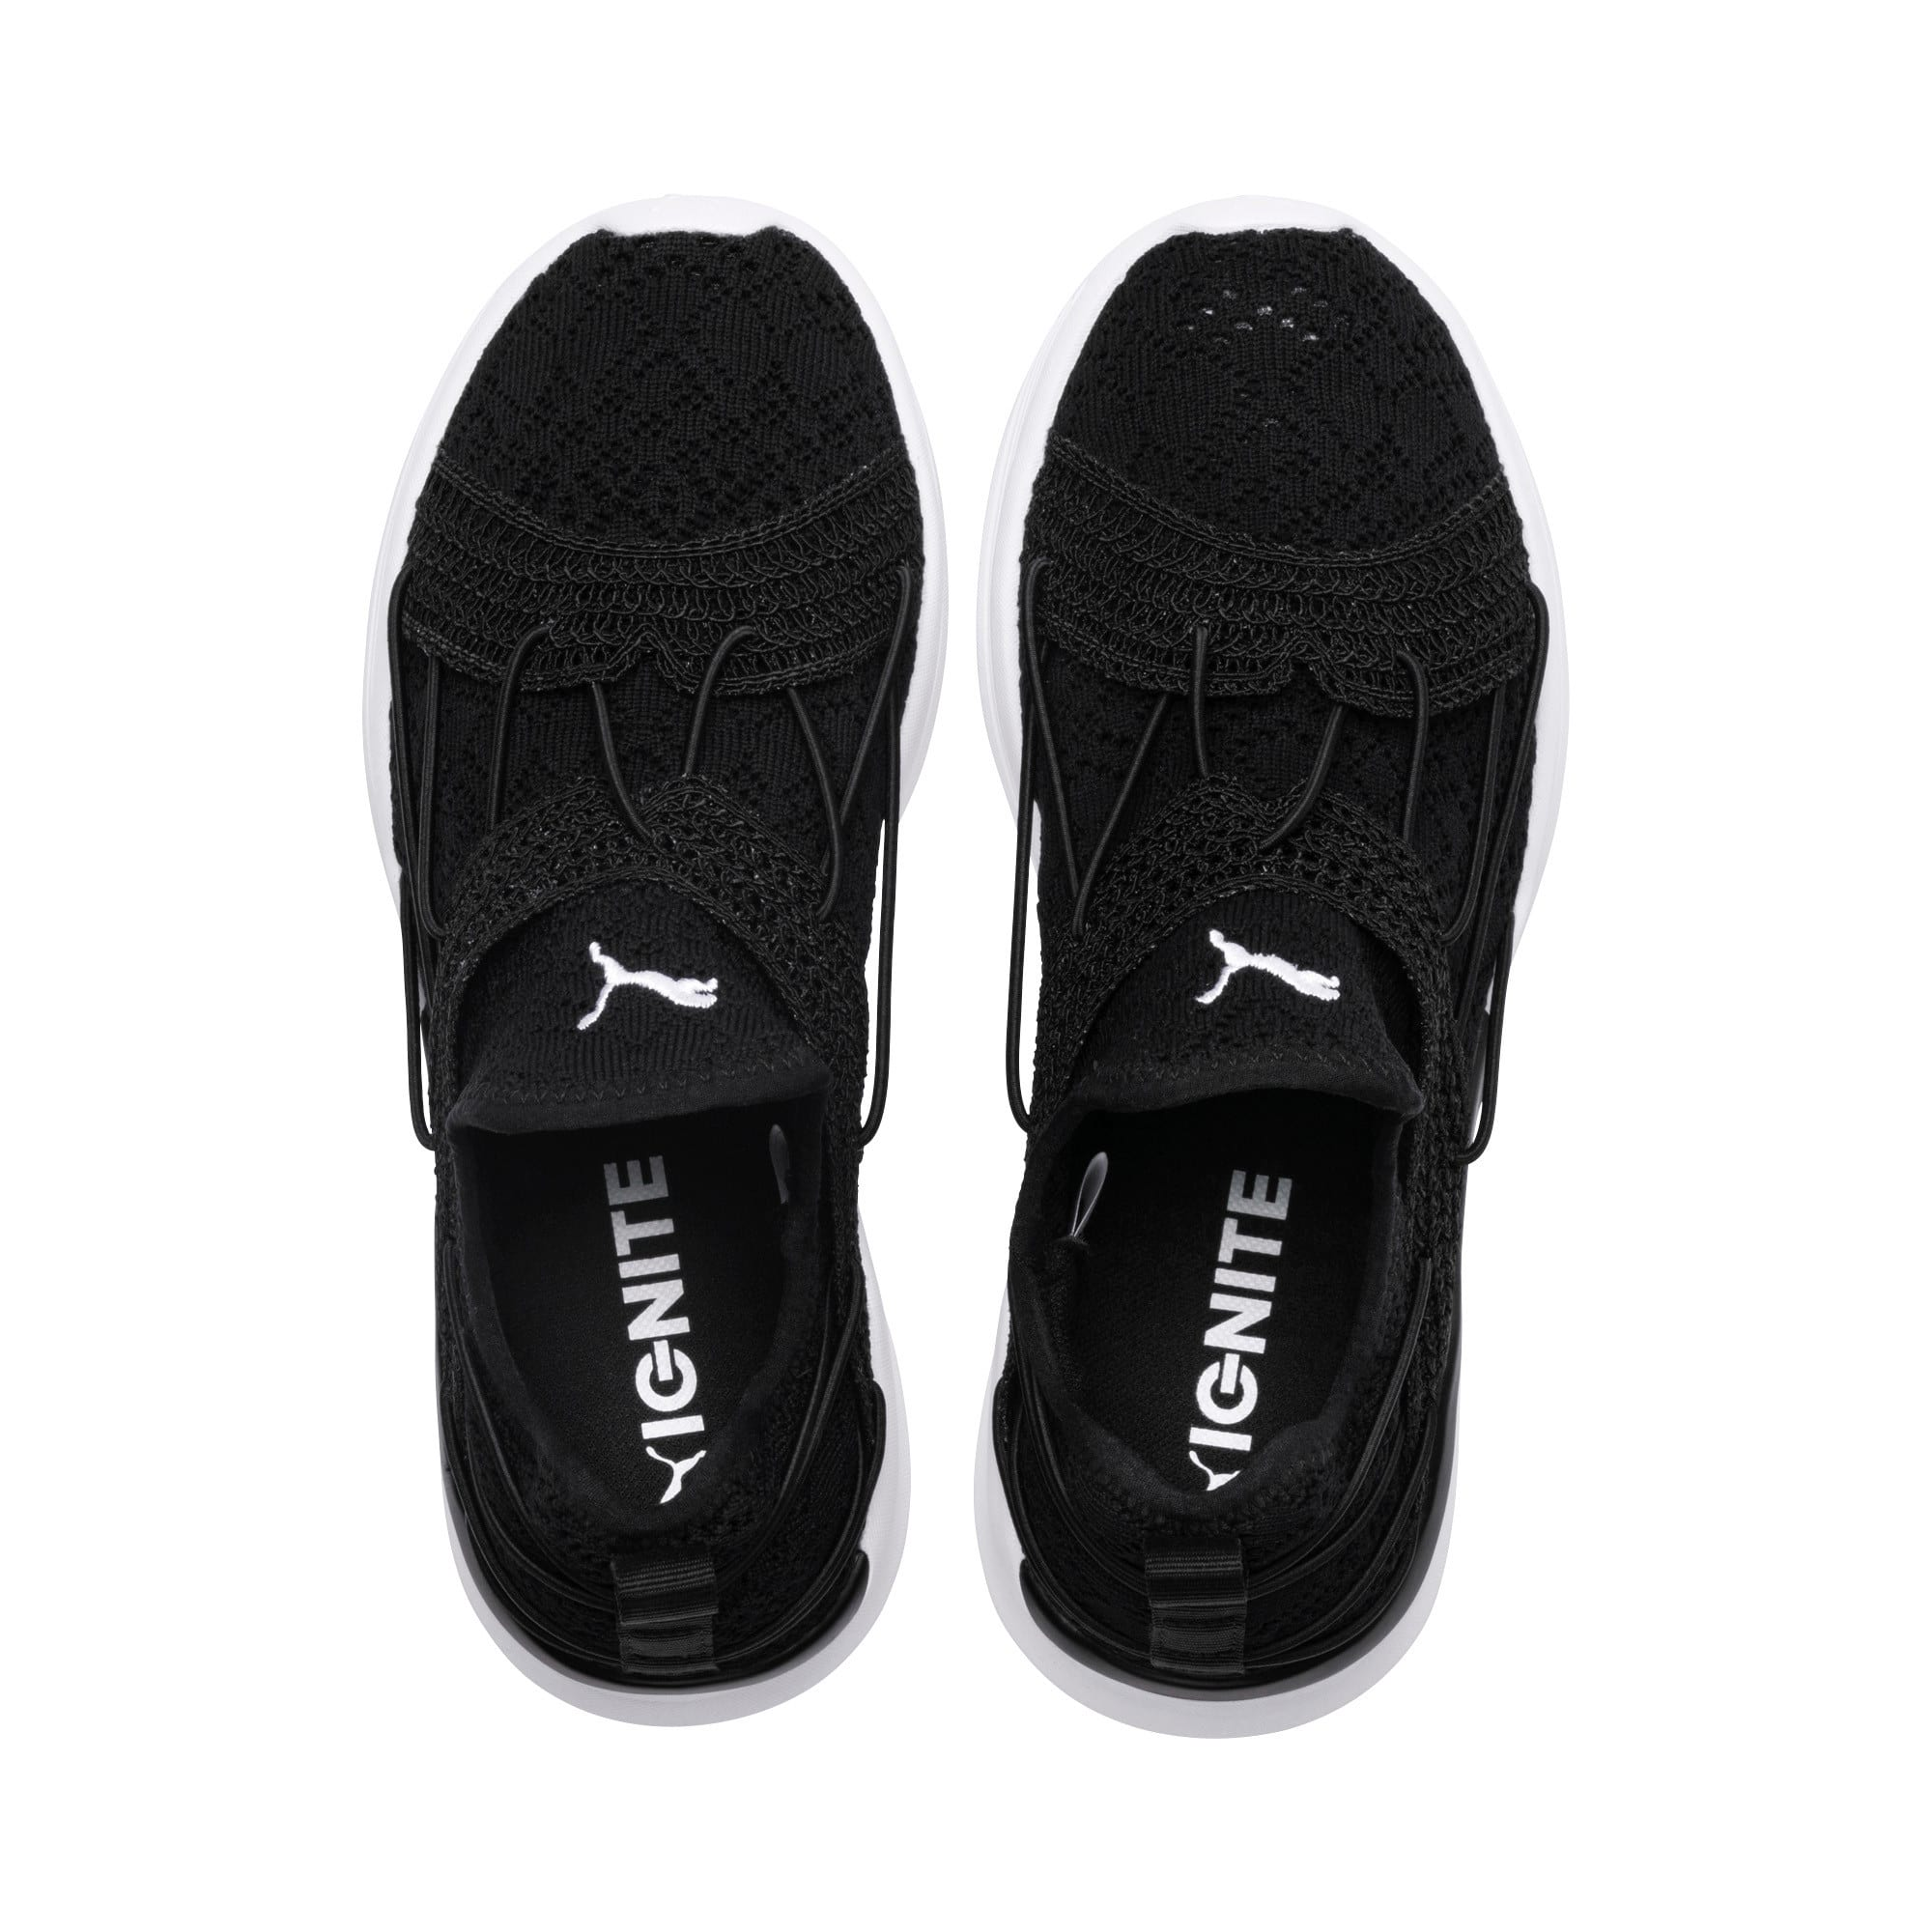 Thumbnail 6 of IGNITE Flash Sensua Wn s Puma Black-Puma, Puma Black-Puma White, medium-IND